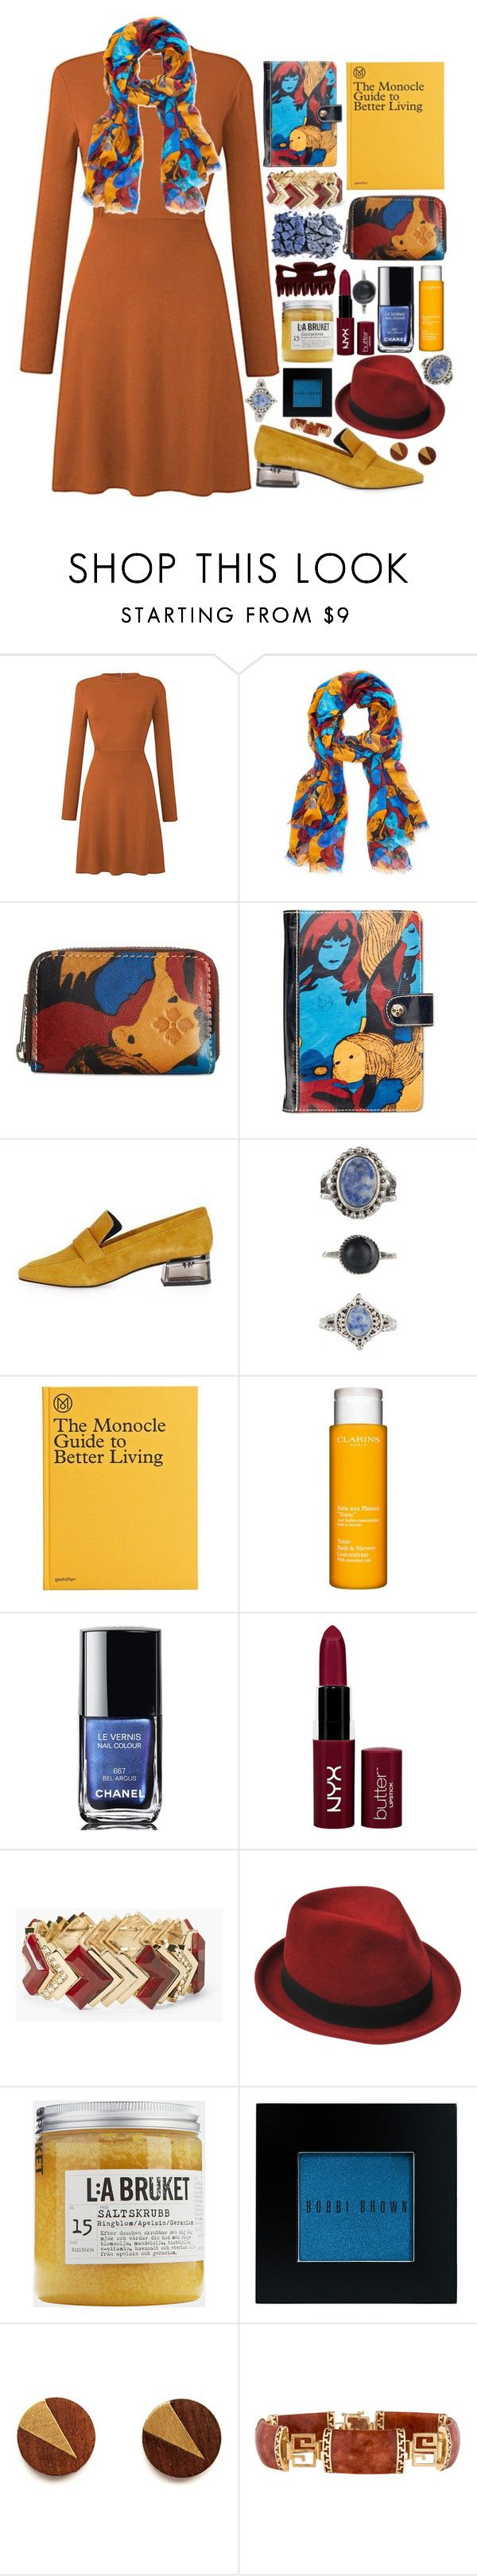 """Better Living"" by ladyvalkyrie ❤ liked on Polyvore featuring Patricia Nash, Topshop, Lovisa, GESTALTEN, Clarins, Chanel, DUO, NYX, White House Black Market and Stetson"